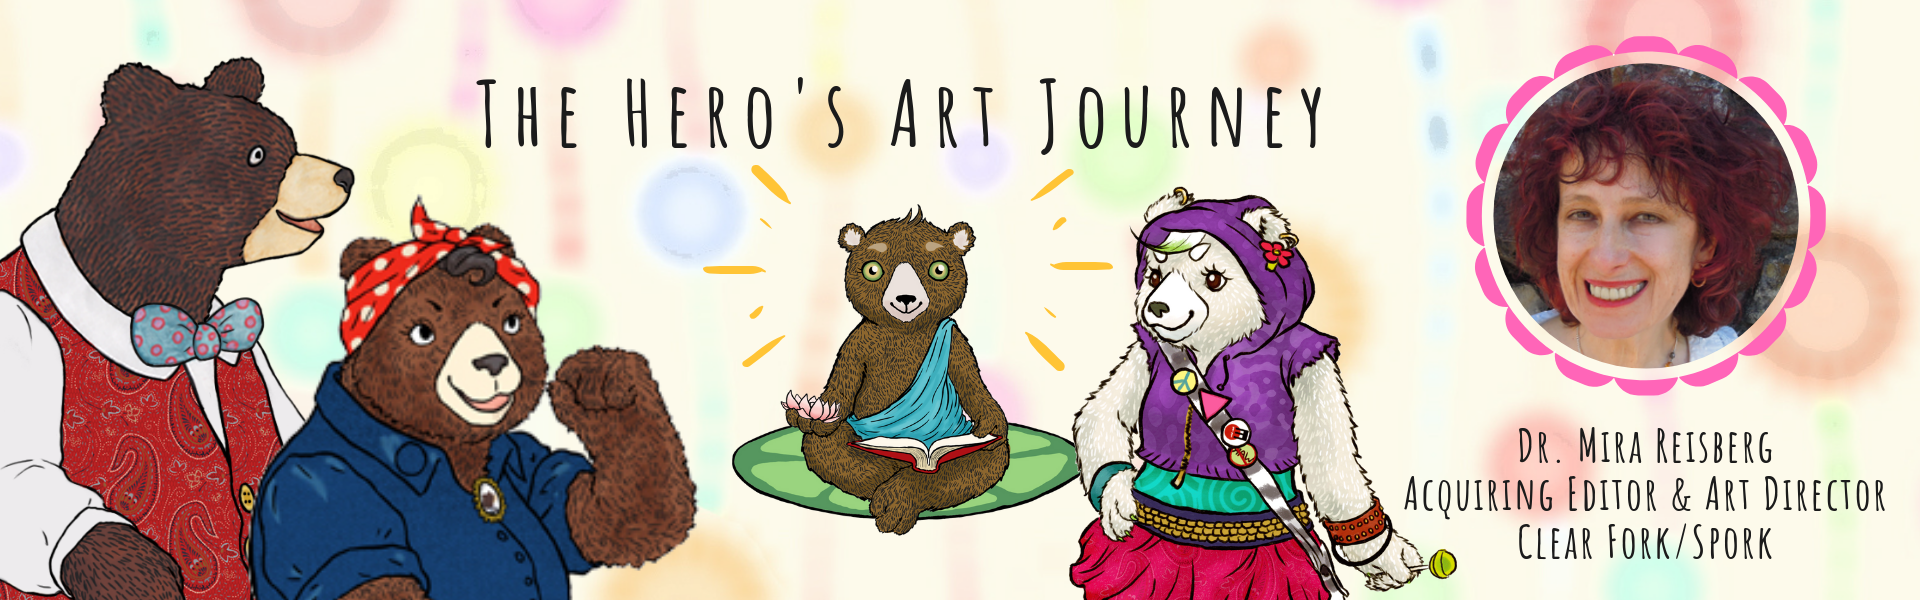 The Hero's Art Journey at the Children's Book Academy